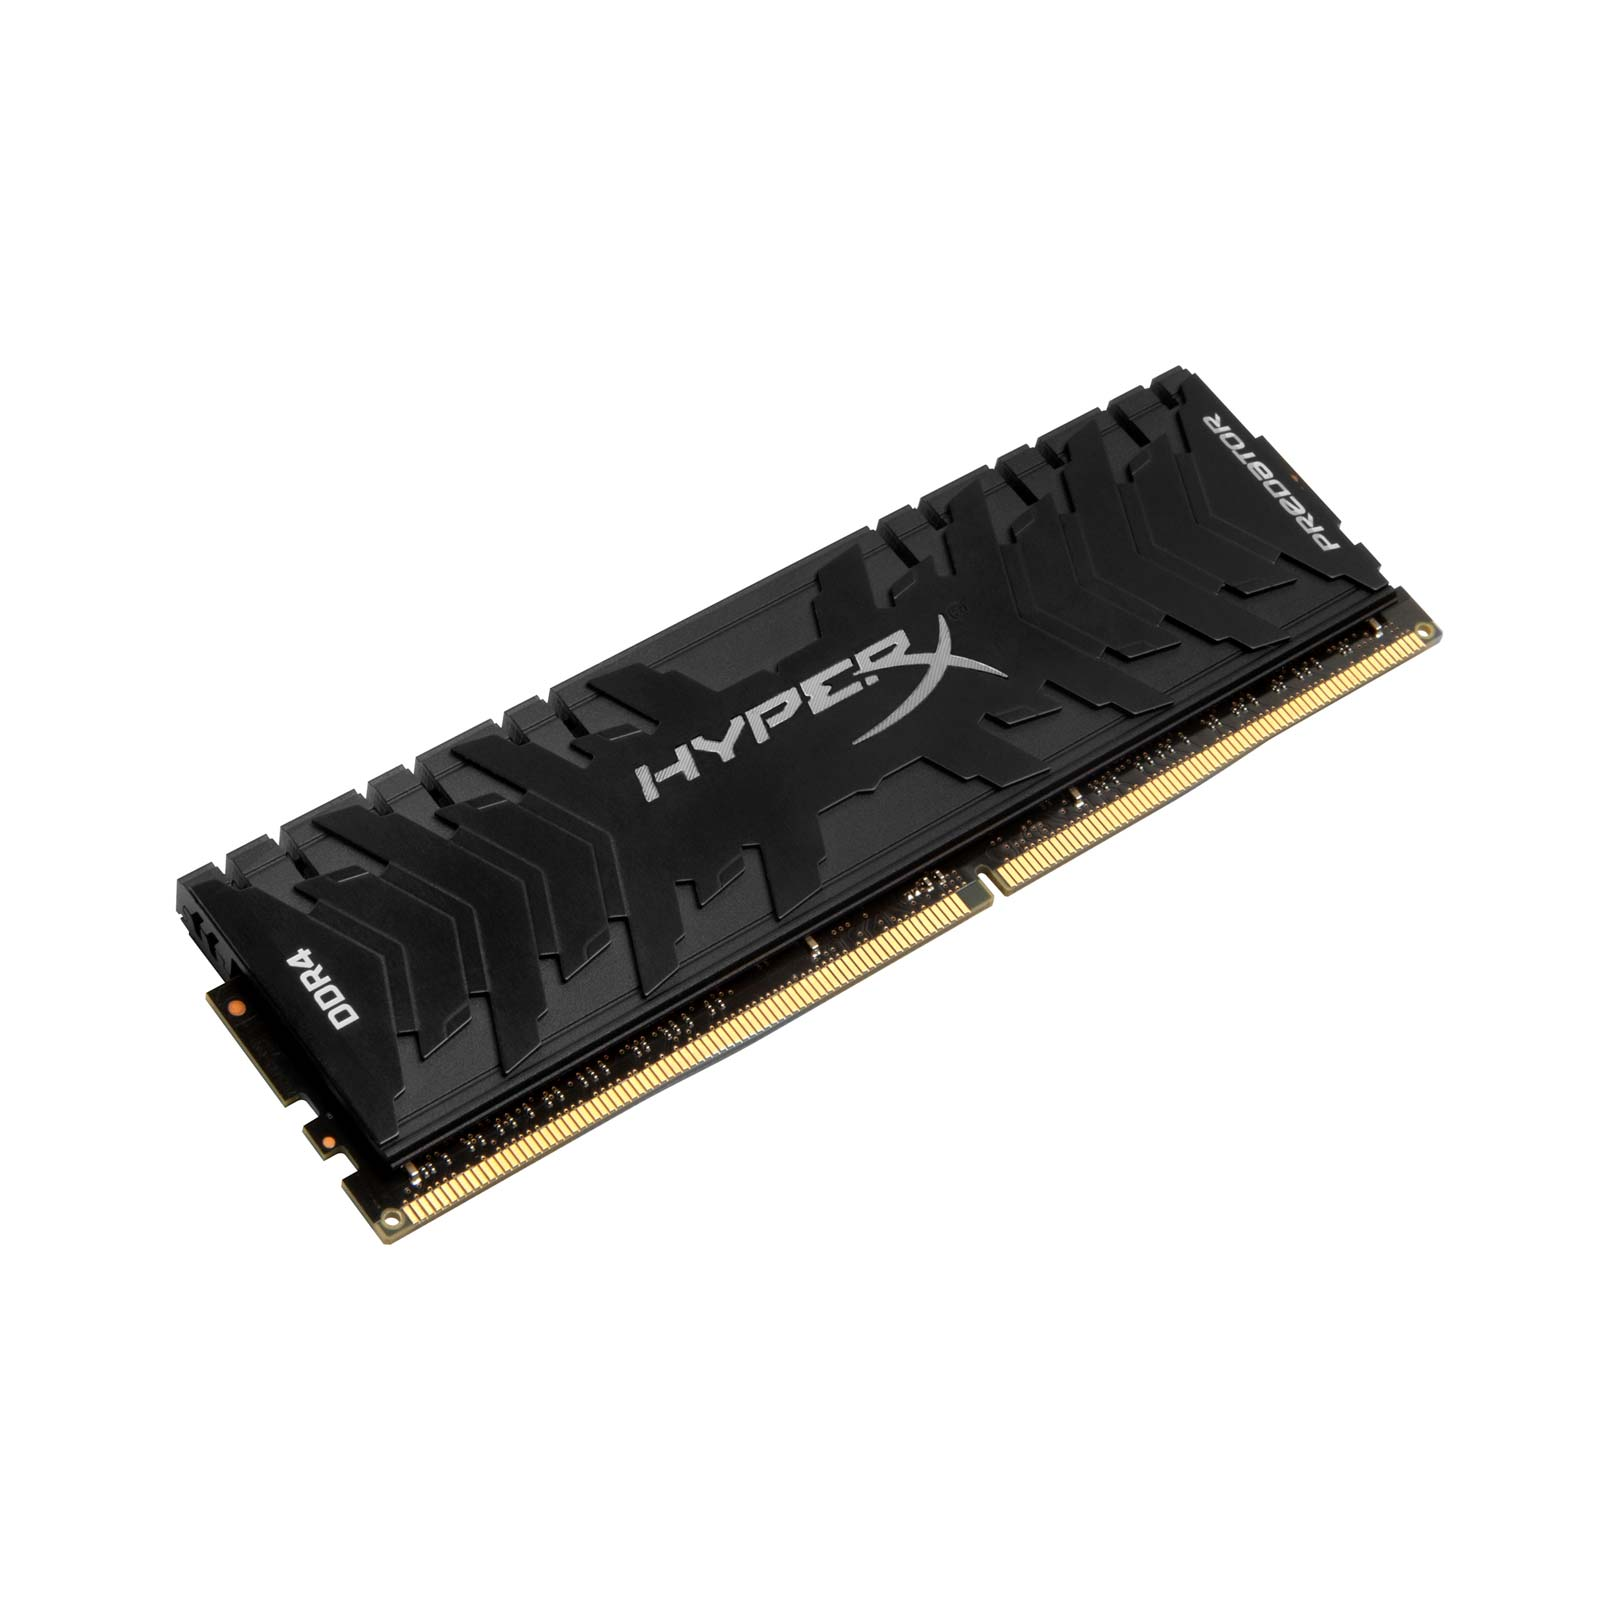 Kingston HX432C16PB3K2/16 16Go (2x8Go DDR4 3200 PC25600) 16Go  3200MHz - Mémoire PC - 1